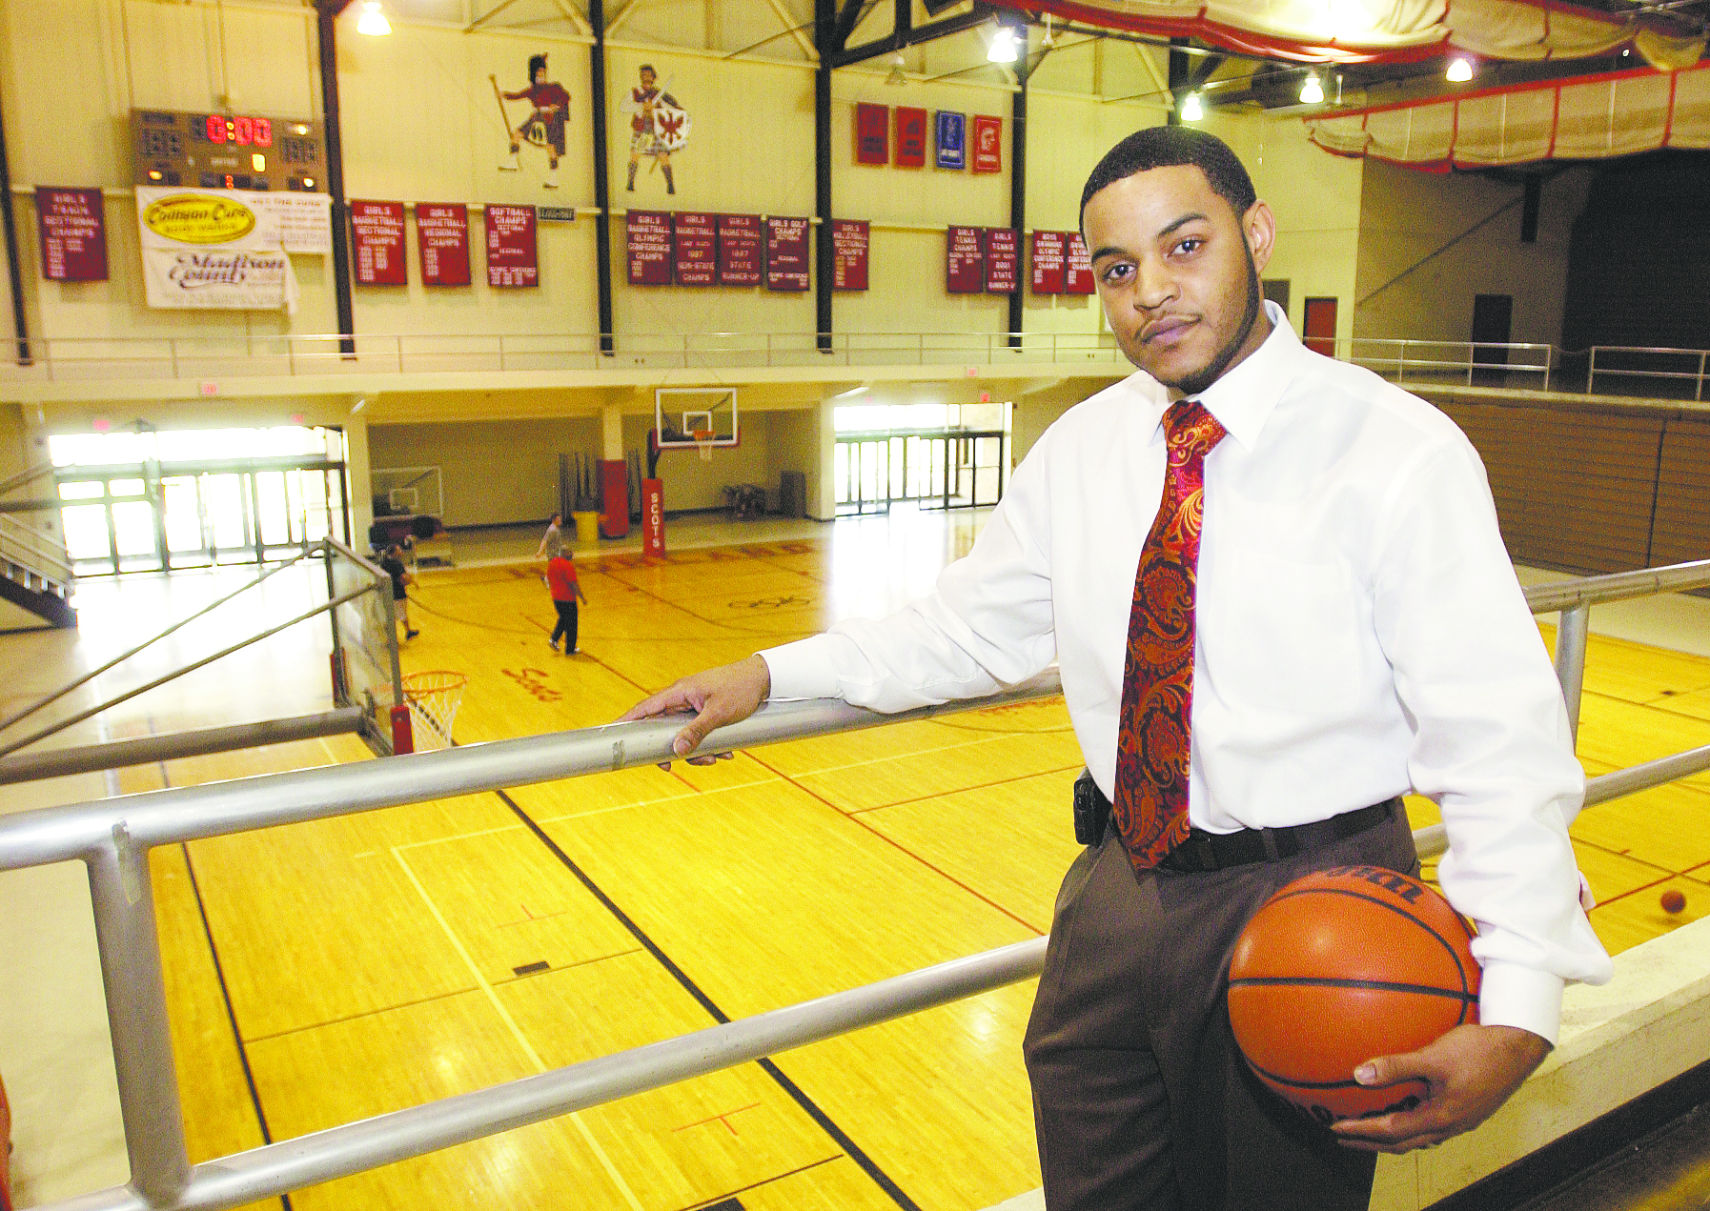 Vision Quest: Washington carves out success at Crispus Attucks ...